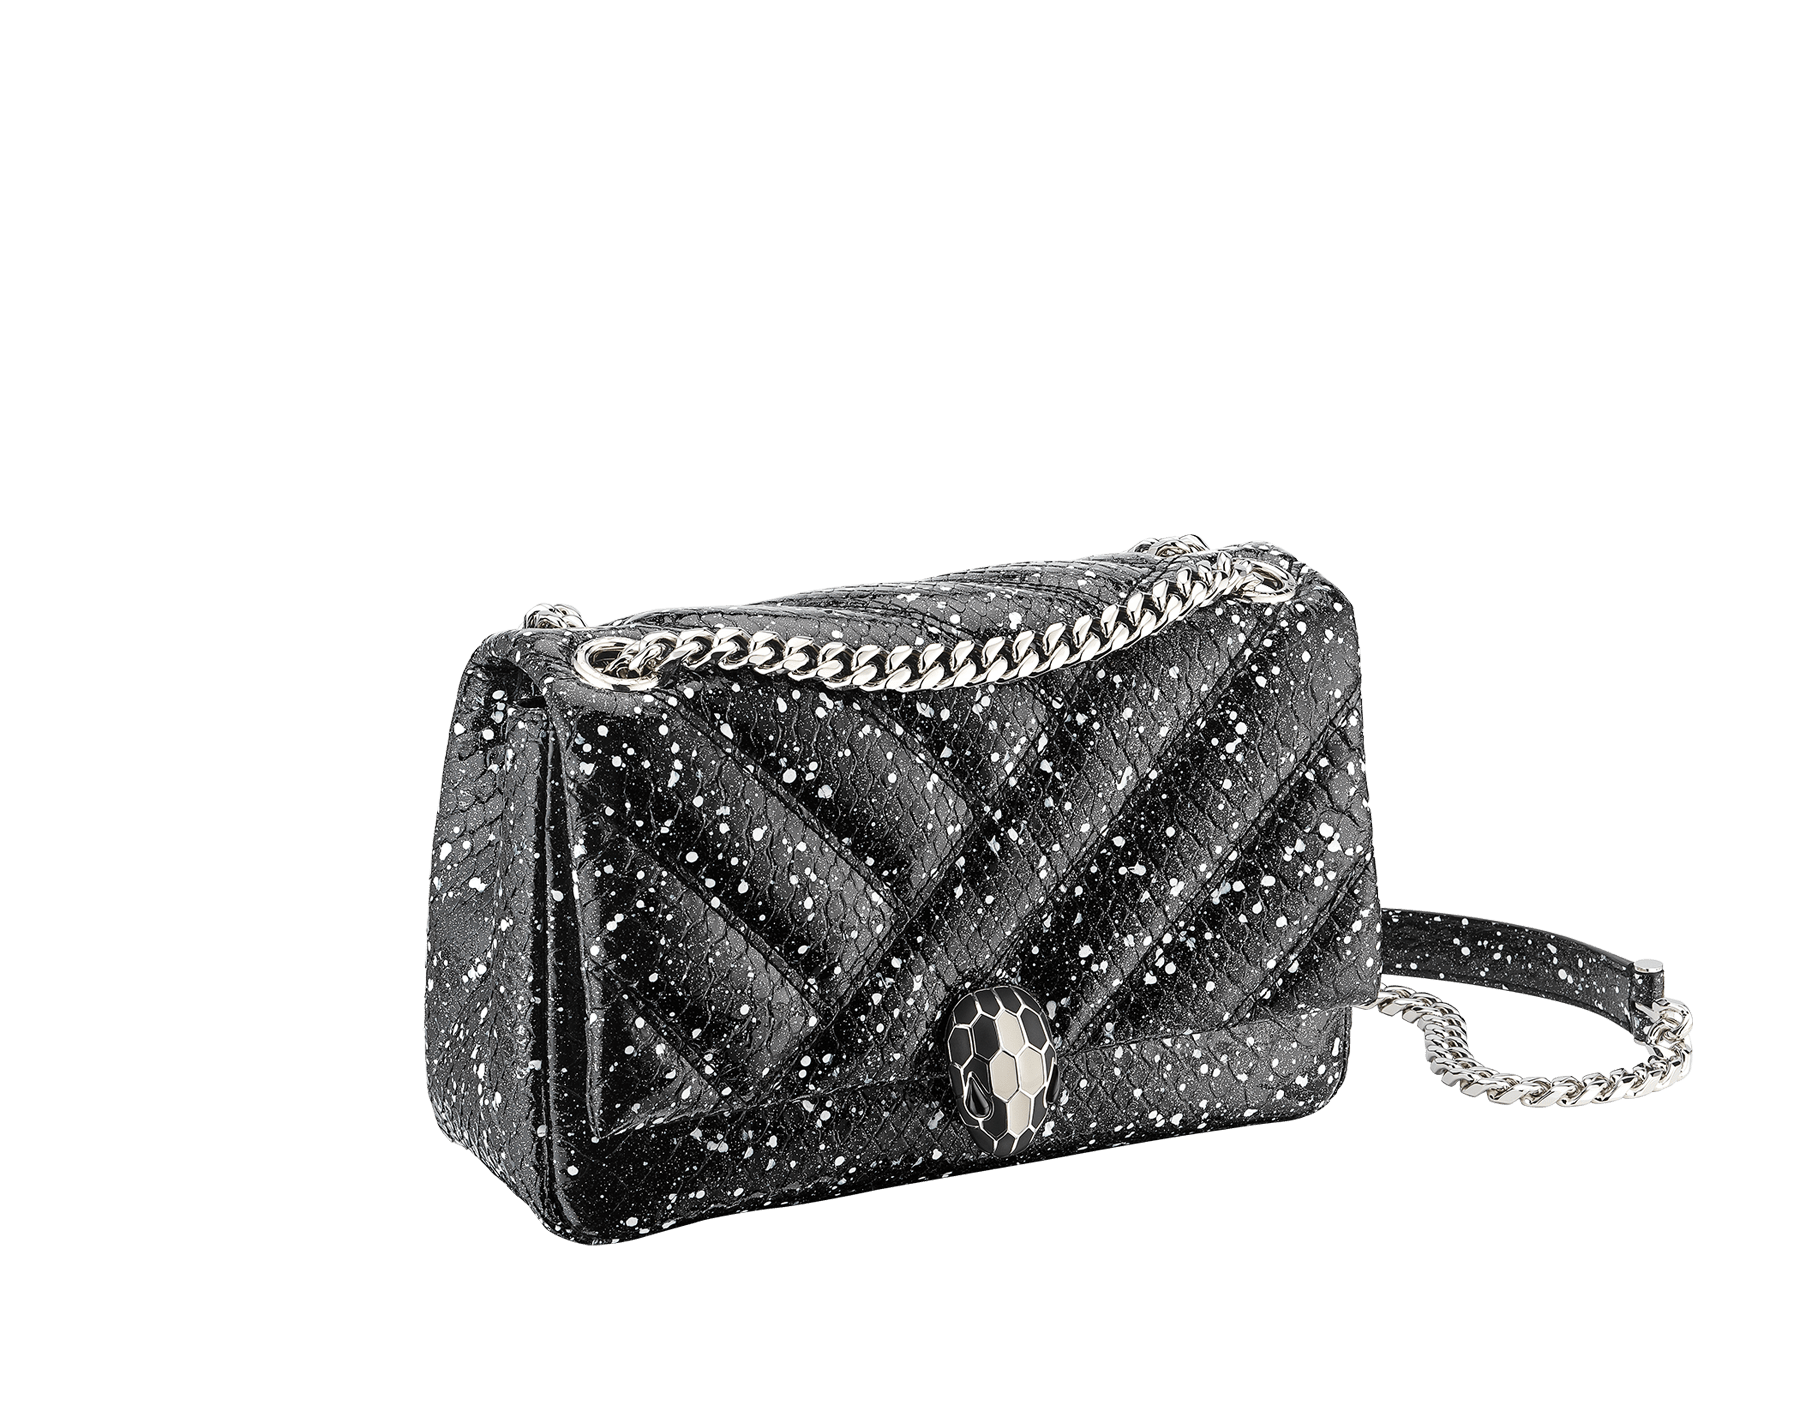 Serpenti Cabochon shoulder bag in soft matelassé black and white cosmic python skin with graphic motif. Snakehead closure in palladium plated brass decorated with matte black and white enamel, and black onyx eyes. 288621 image 2